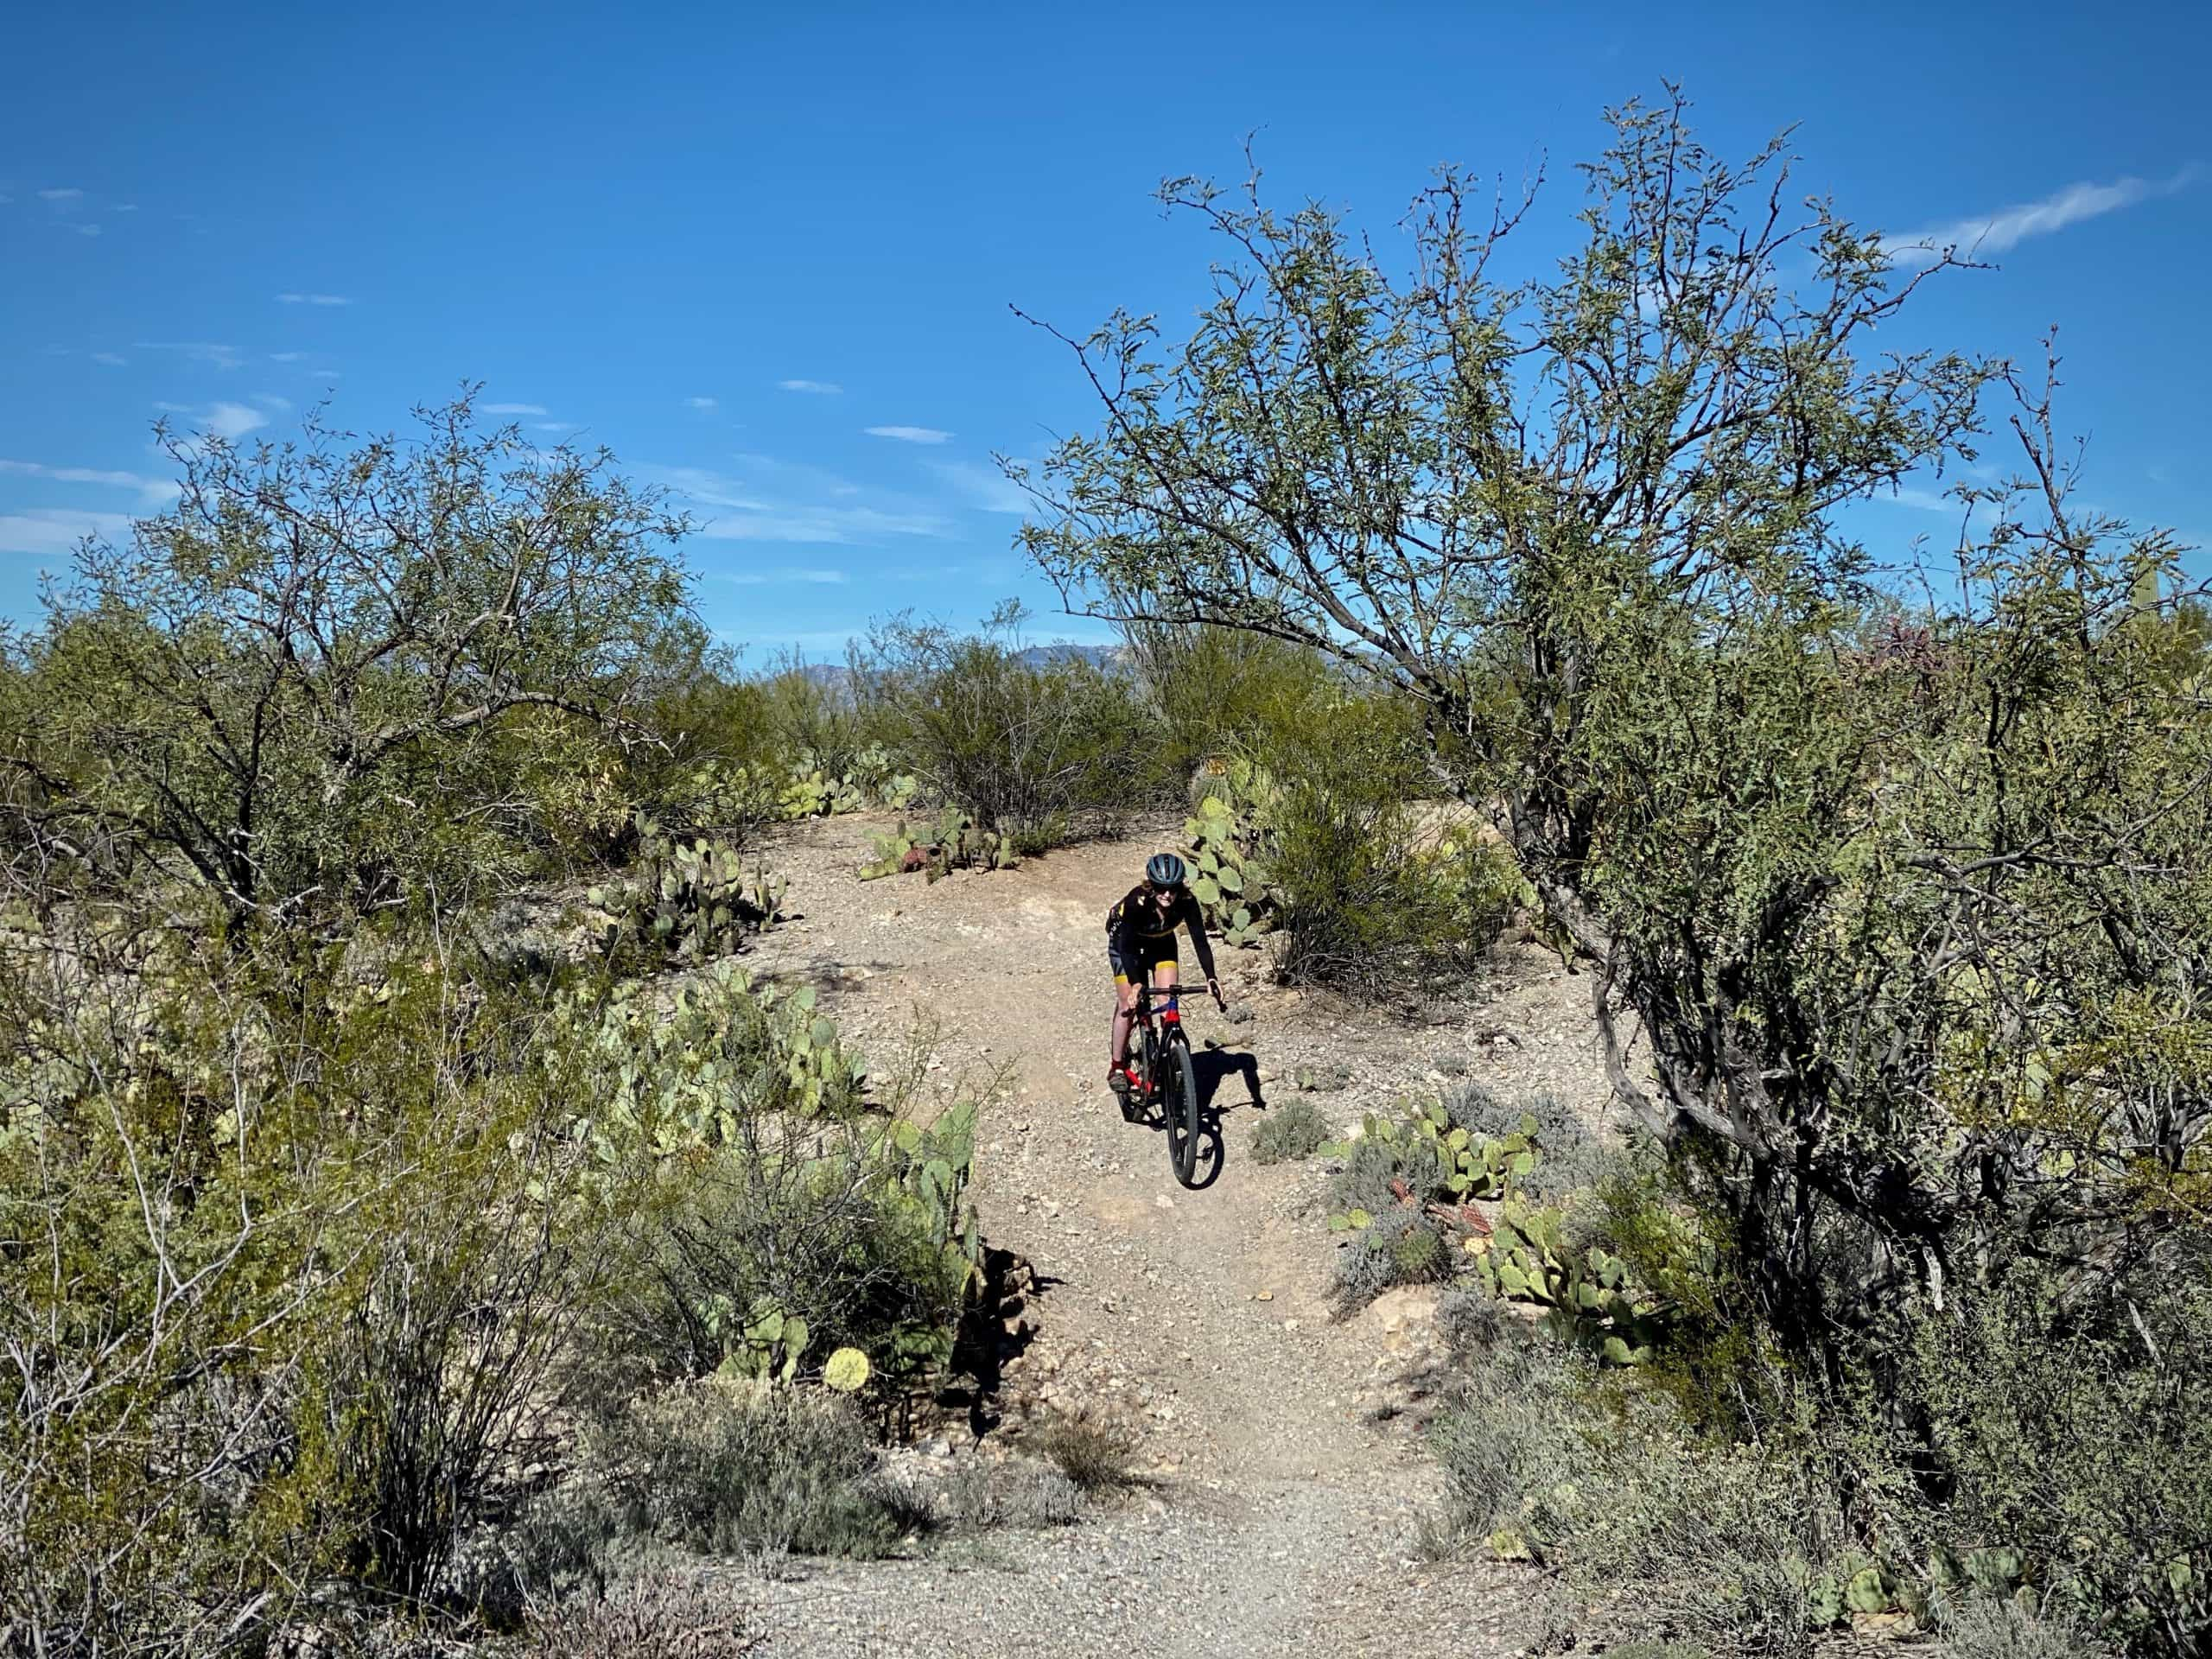 Woman cyclist descending into wash in Saguaro National Park (east).